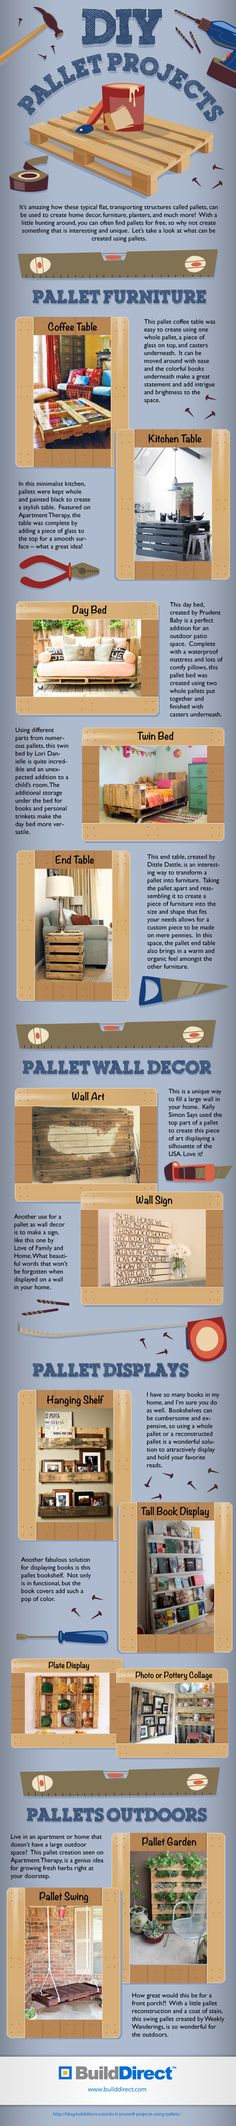 DIY_Pallets- who wants to help me make this coffee table?